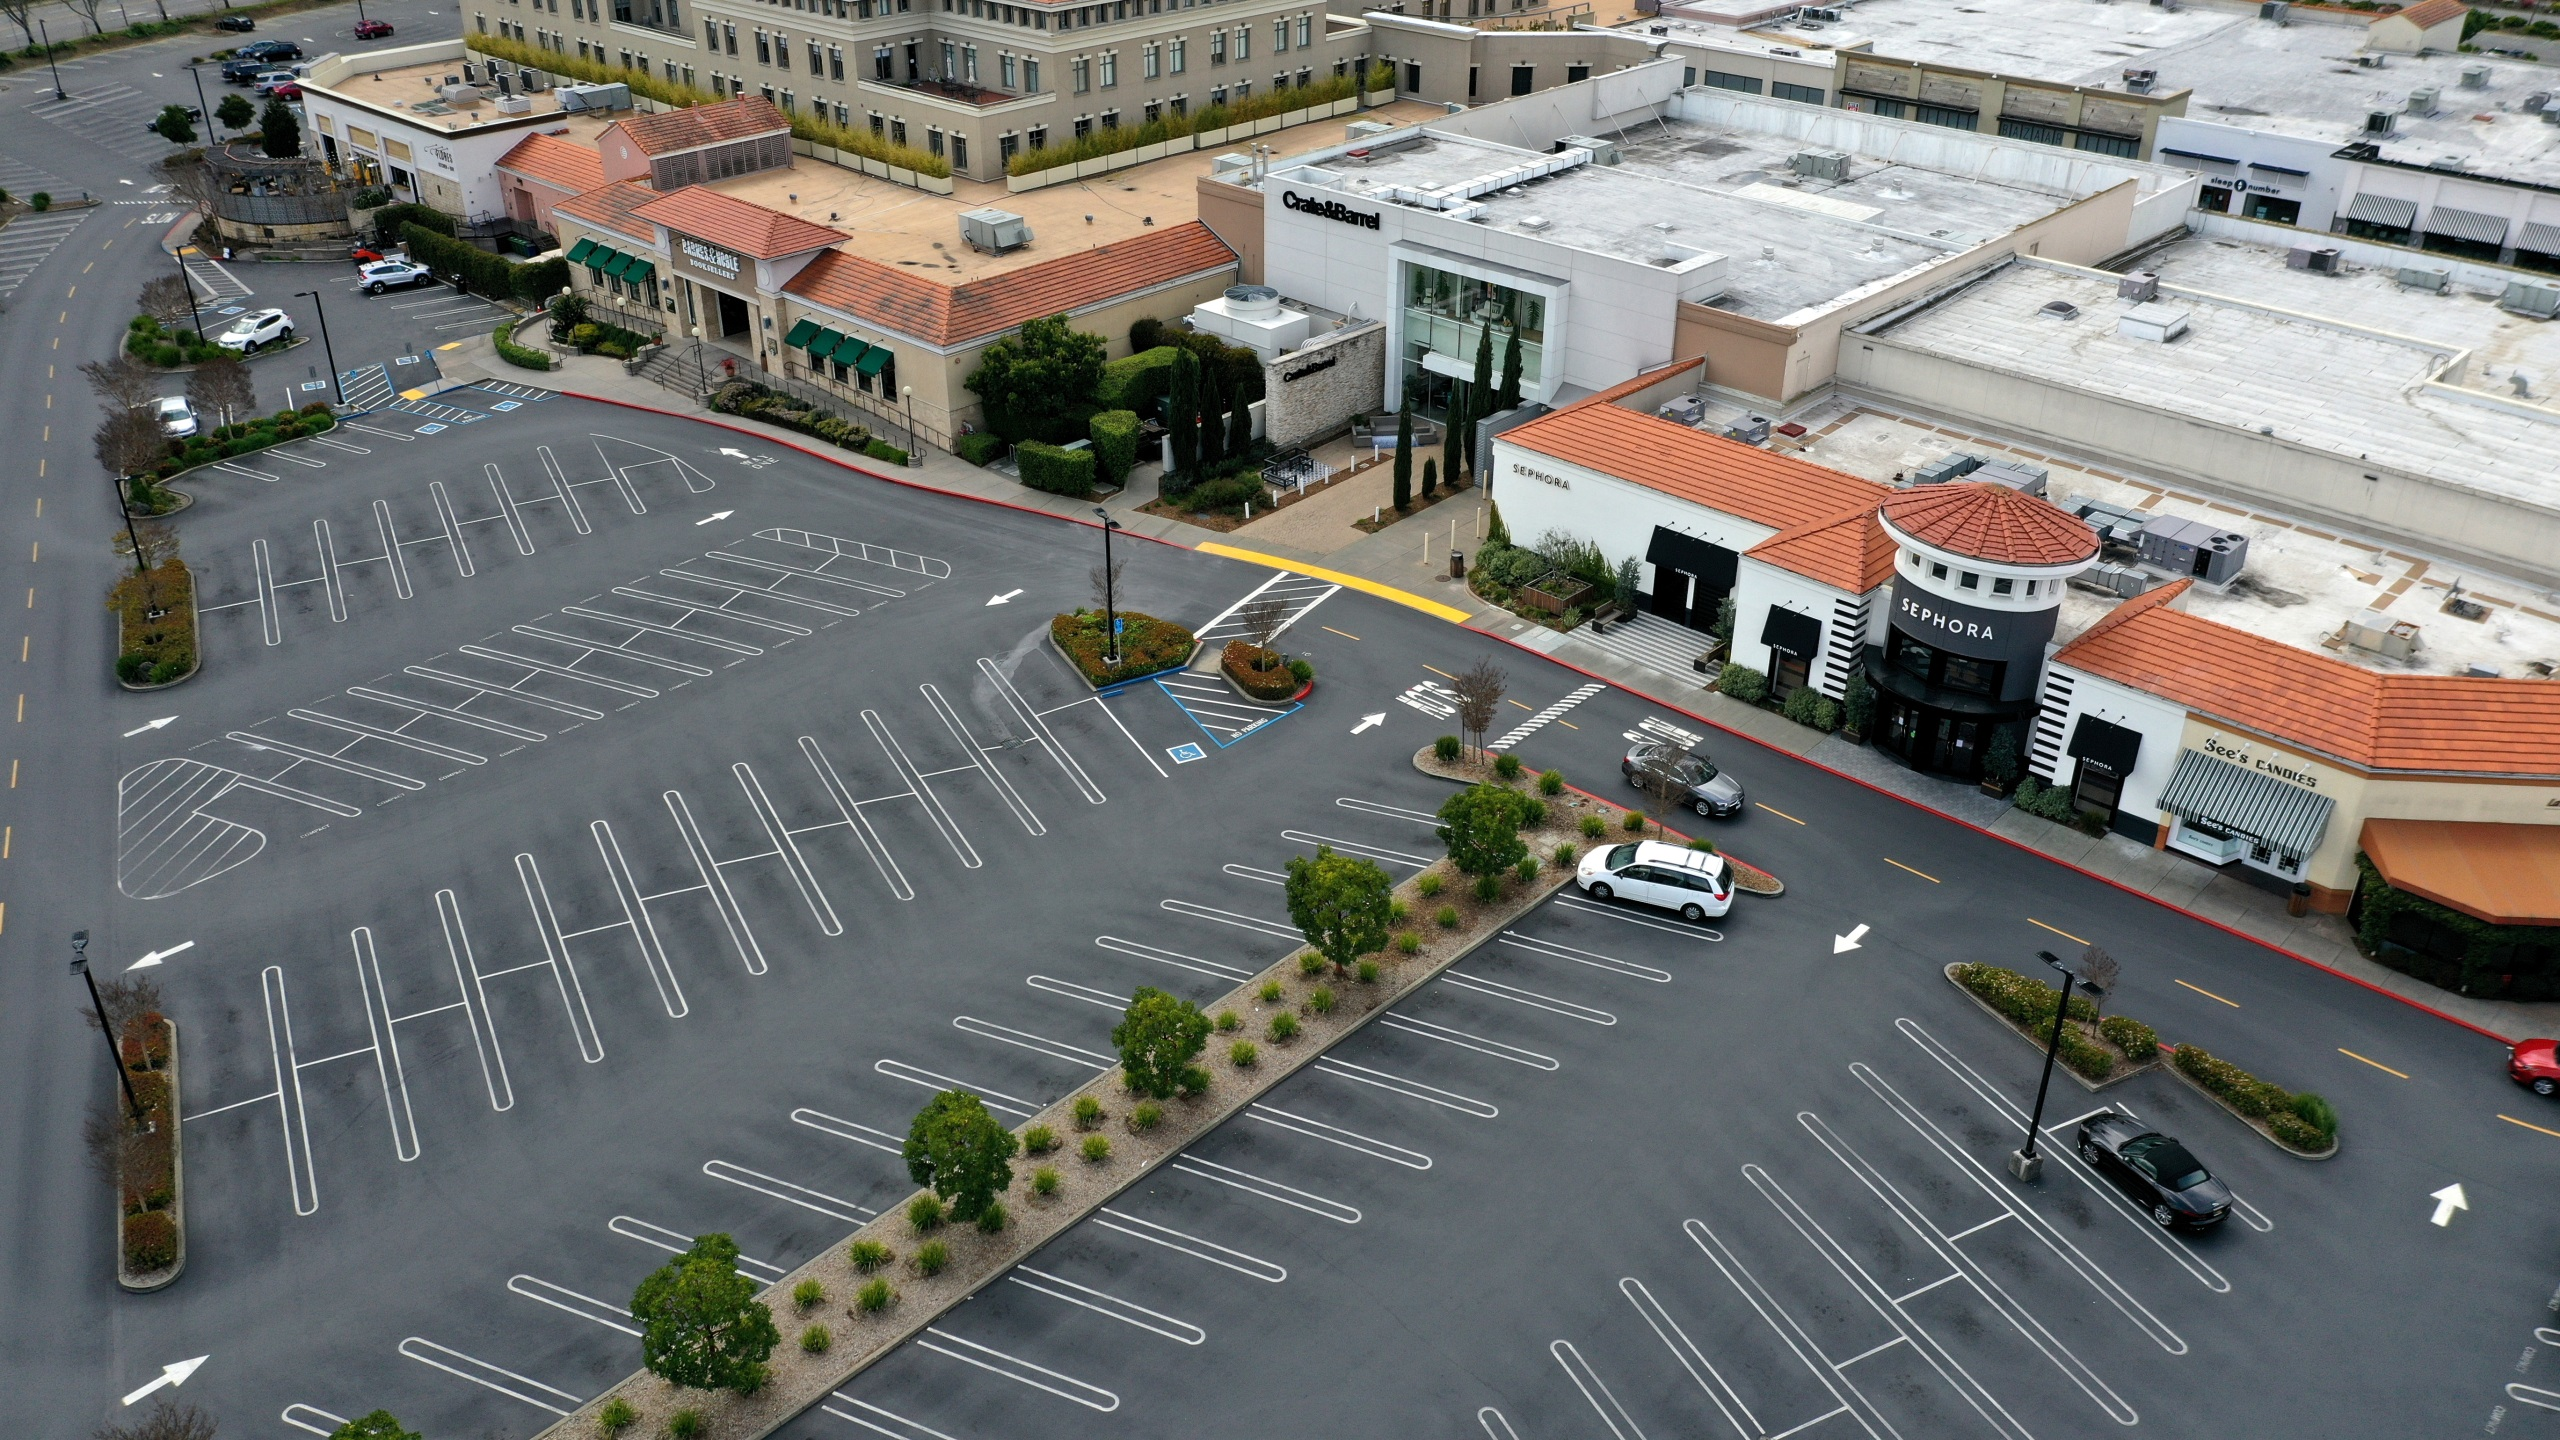 The parking lot at The Village at Corte Madera shopping mall is nearly empty on March 17, 2020, in Corte Madera, California. (Justin Sullivan/Getty Images)